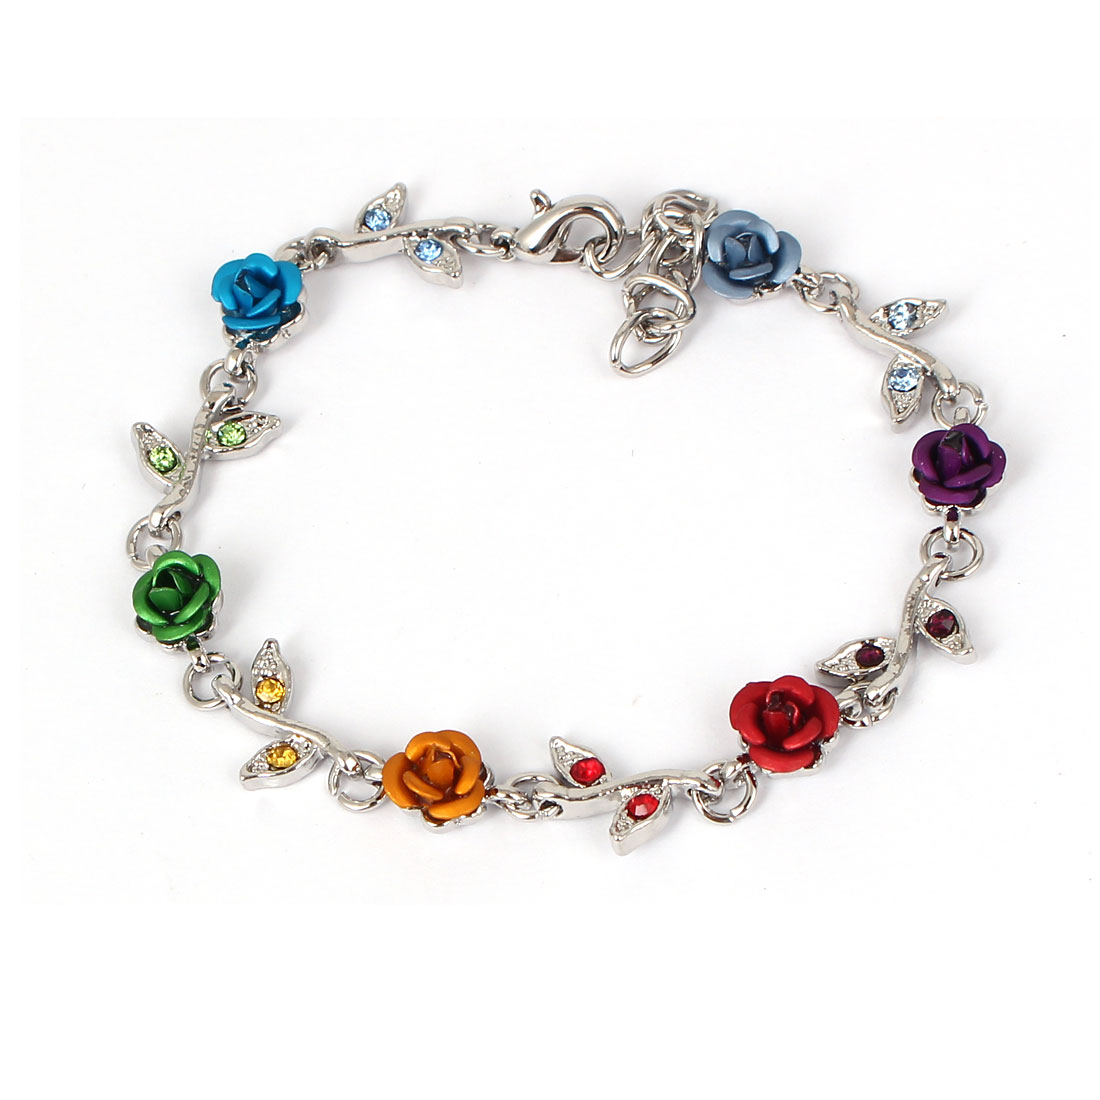 Girls Lady Fashion Jewelry Rose Flower Crystal Decor Chain Bracelet Multicolor